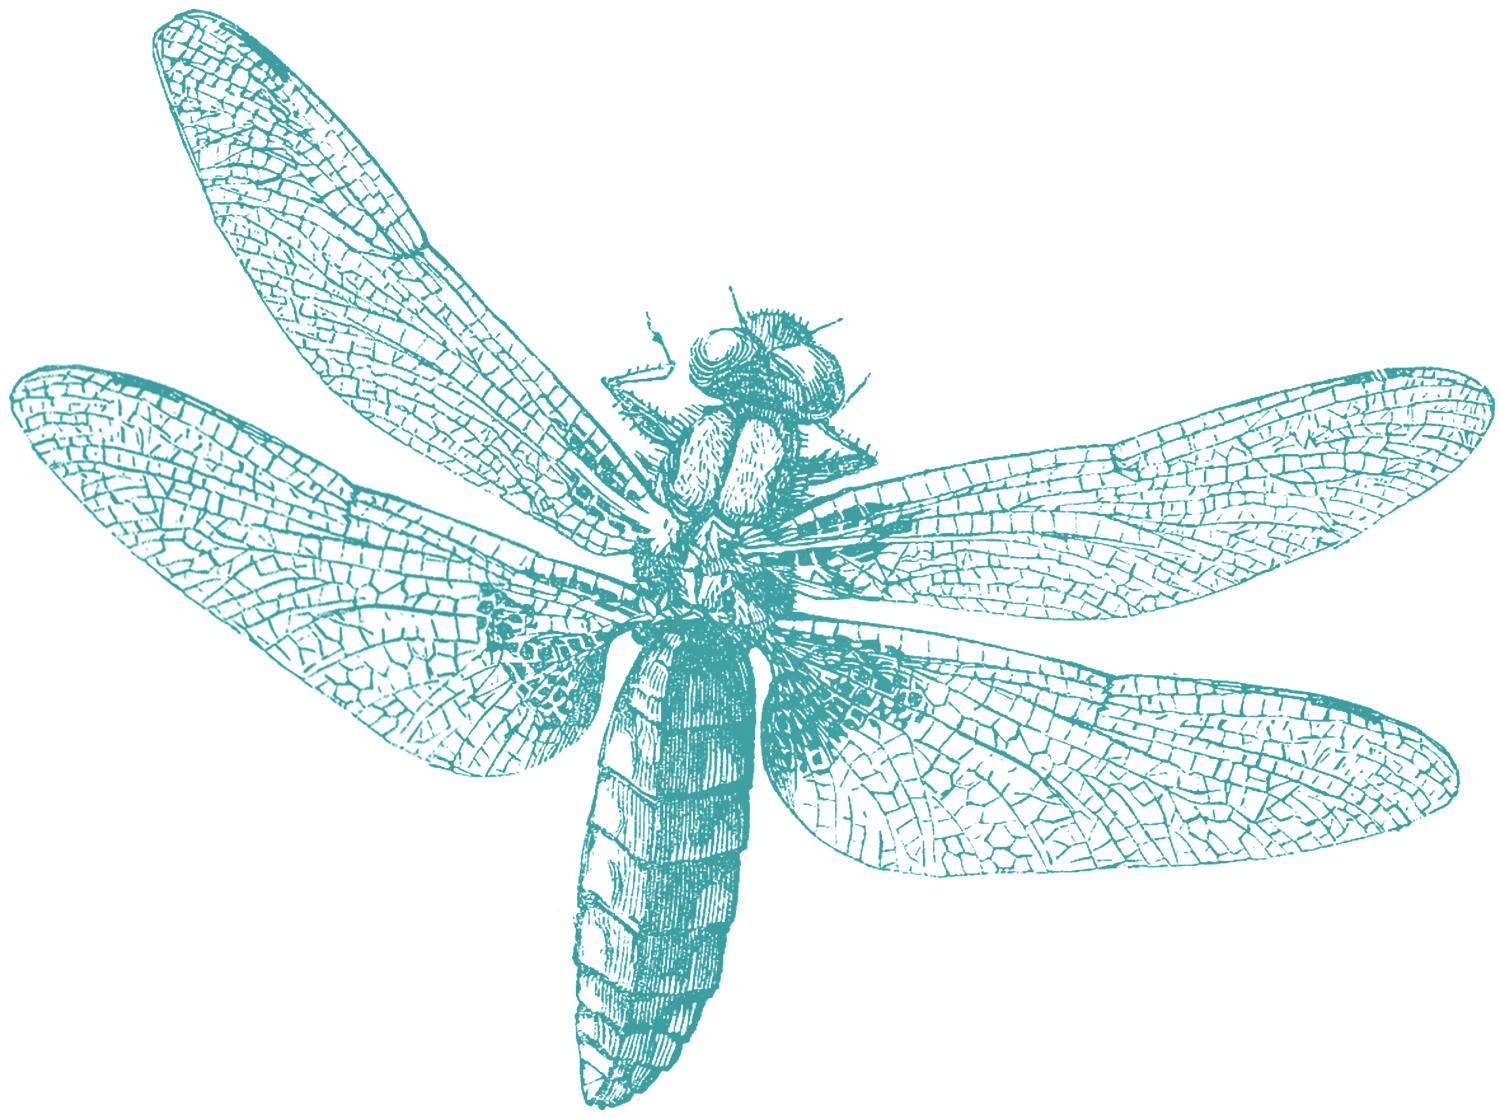 Royalty Free Images - Dragonfly - The Graphics Fairy: thegraphicsfairy.com/royalty-free-images-dragonfly